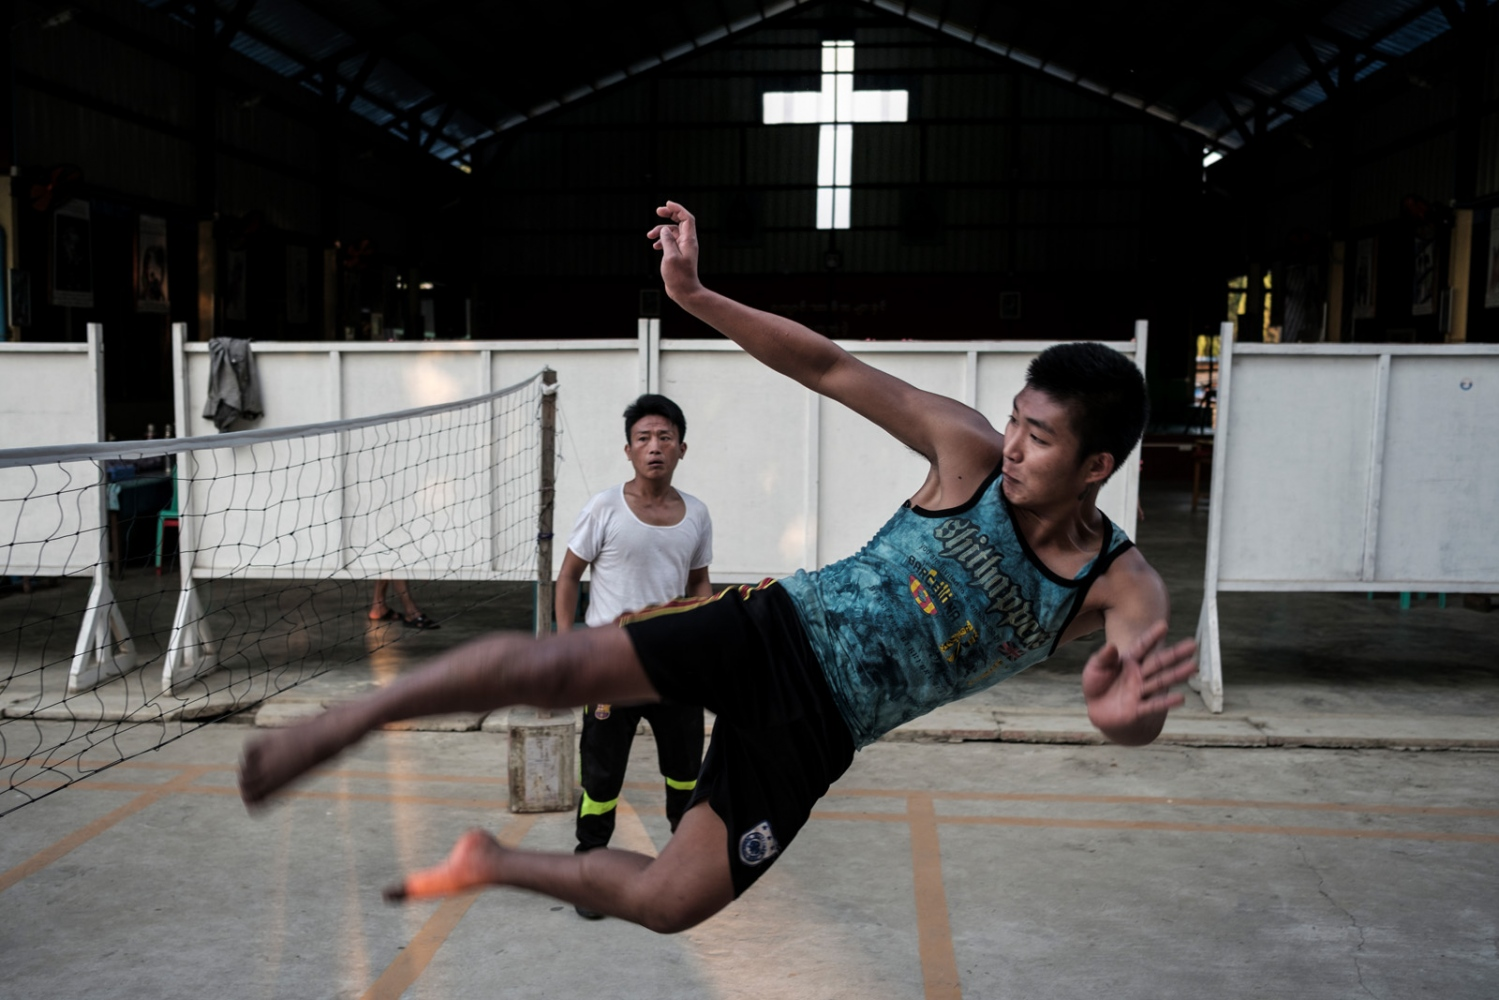 Clients play Chinlone, a popular local sport, at a Catholic drug rehabilitation center in Myitkyina, Kachin State, Myanmar.